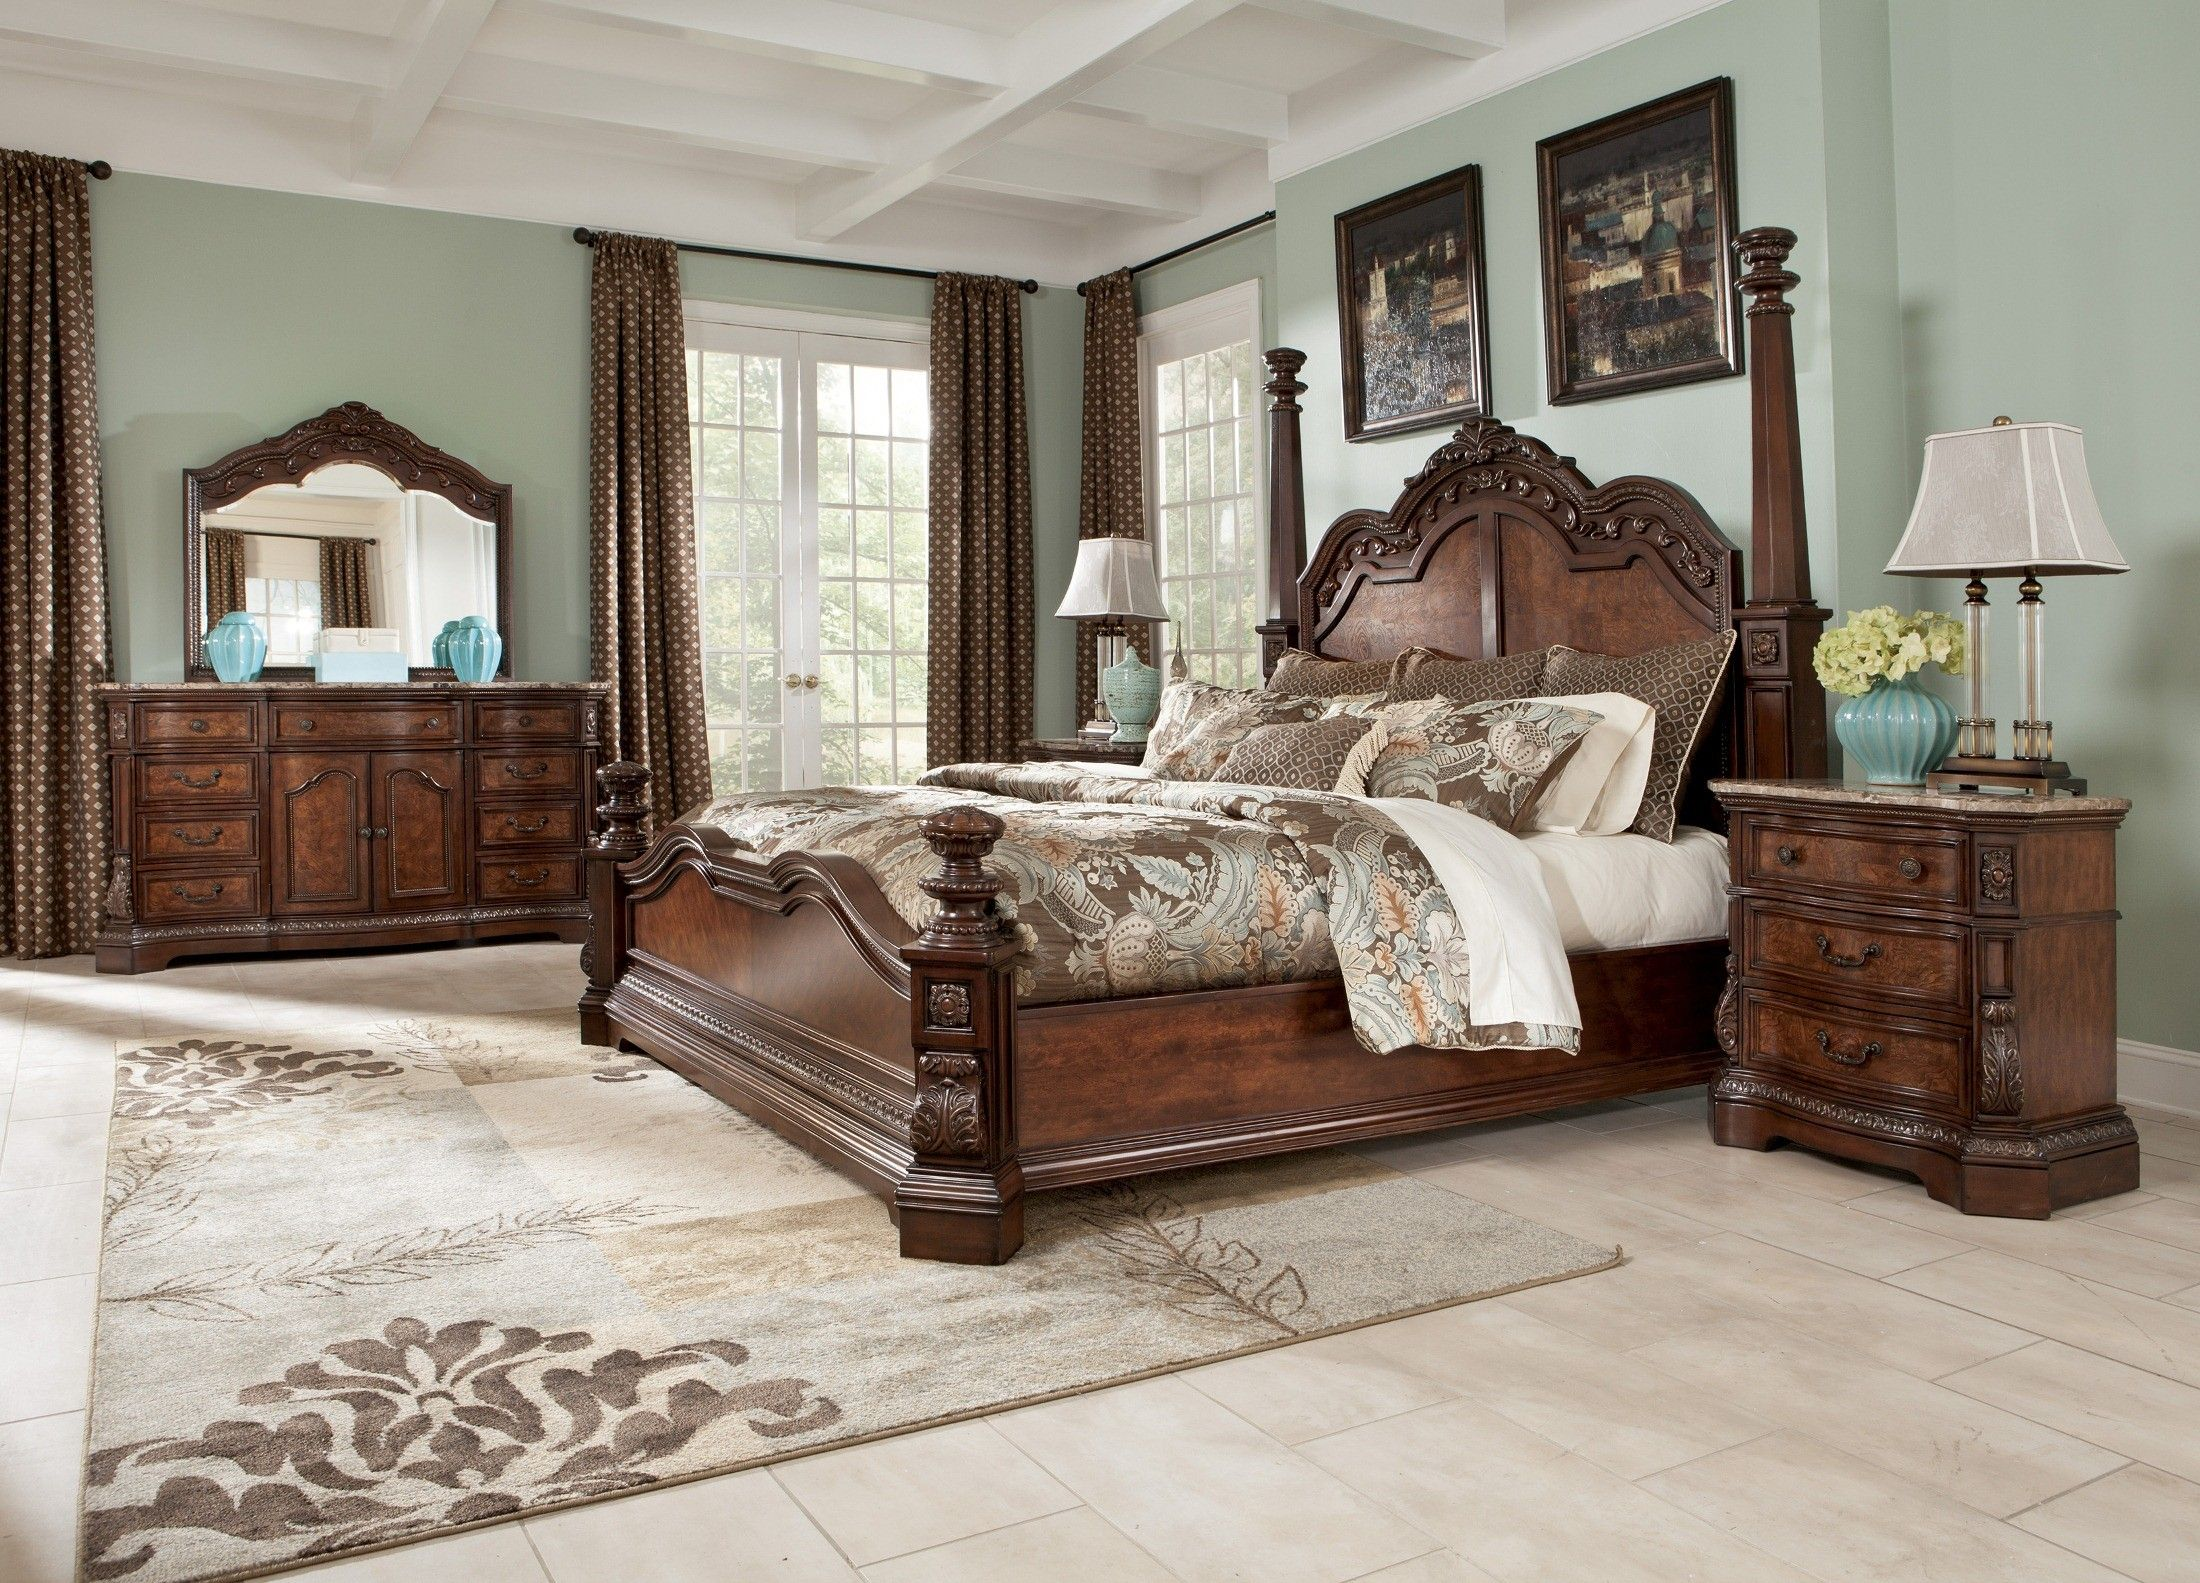 Four poster bedroom sets   Ledelle Poster Bedroom Set  B705 51 71 four poster bedroom sets   Ledelle Poster Bedroom Set  B705 51 71  . Four Poster Bedroom Sets. Home Design Ideas